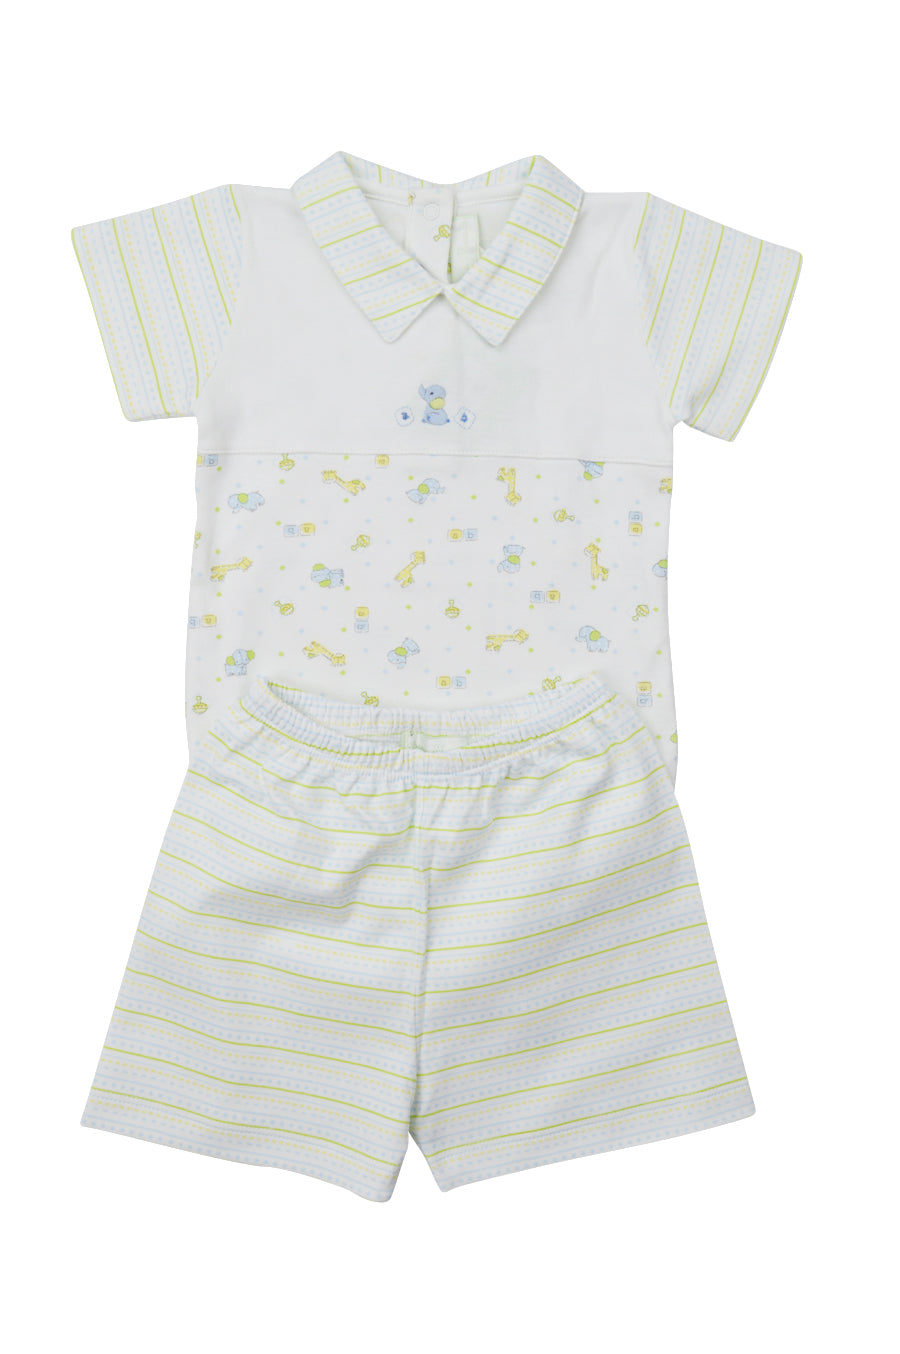 Little Threads Giraffe And Elephant Baby Threads Pima Cotton Baby Boy's Romper - Little Threads Inc. Children's Clothing